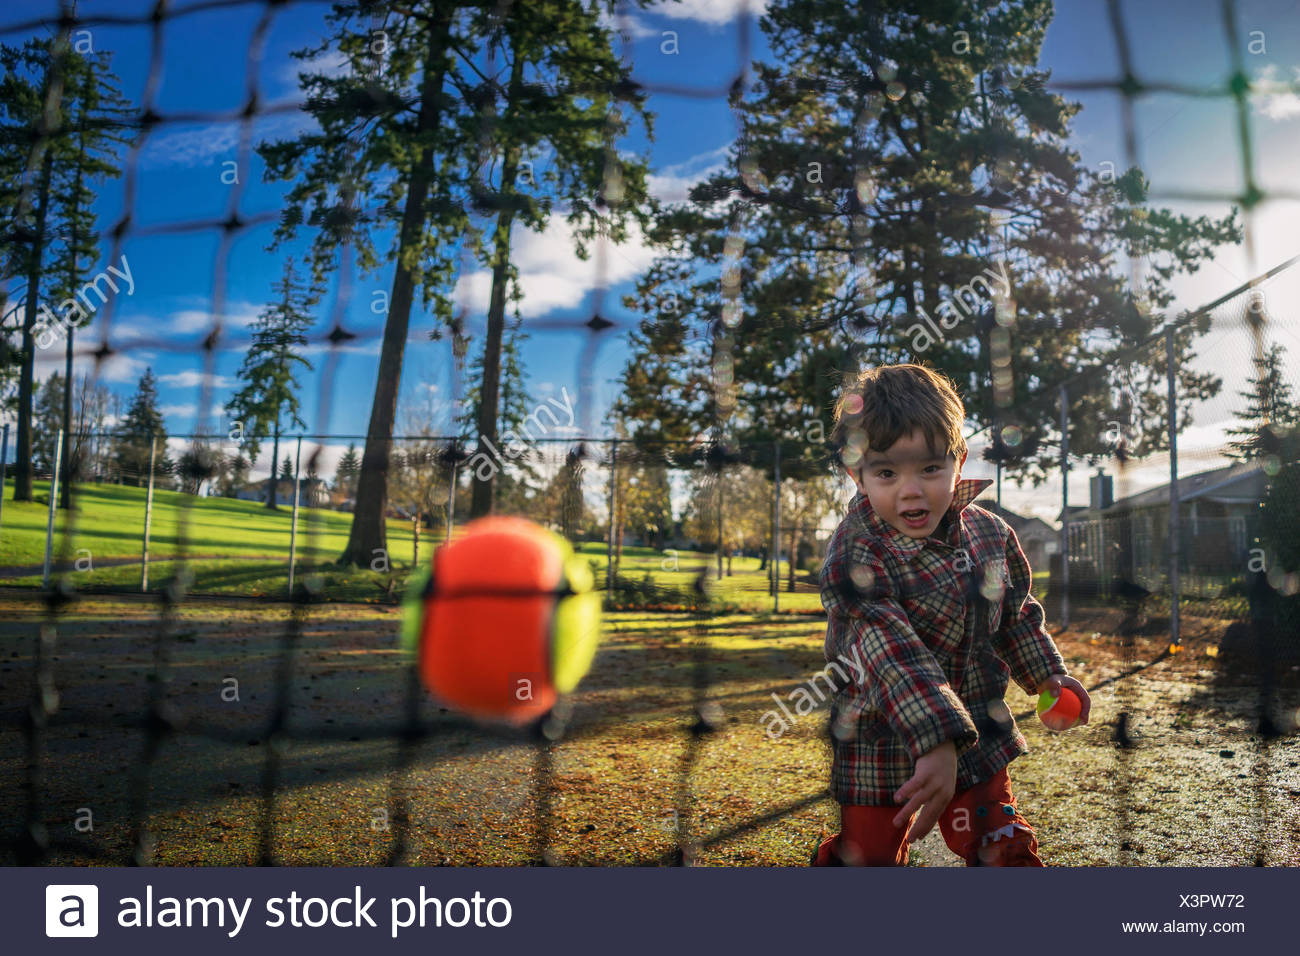 Young boy throwing tennis ball at a net - Stock Image